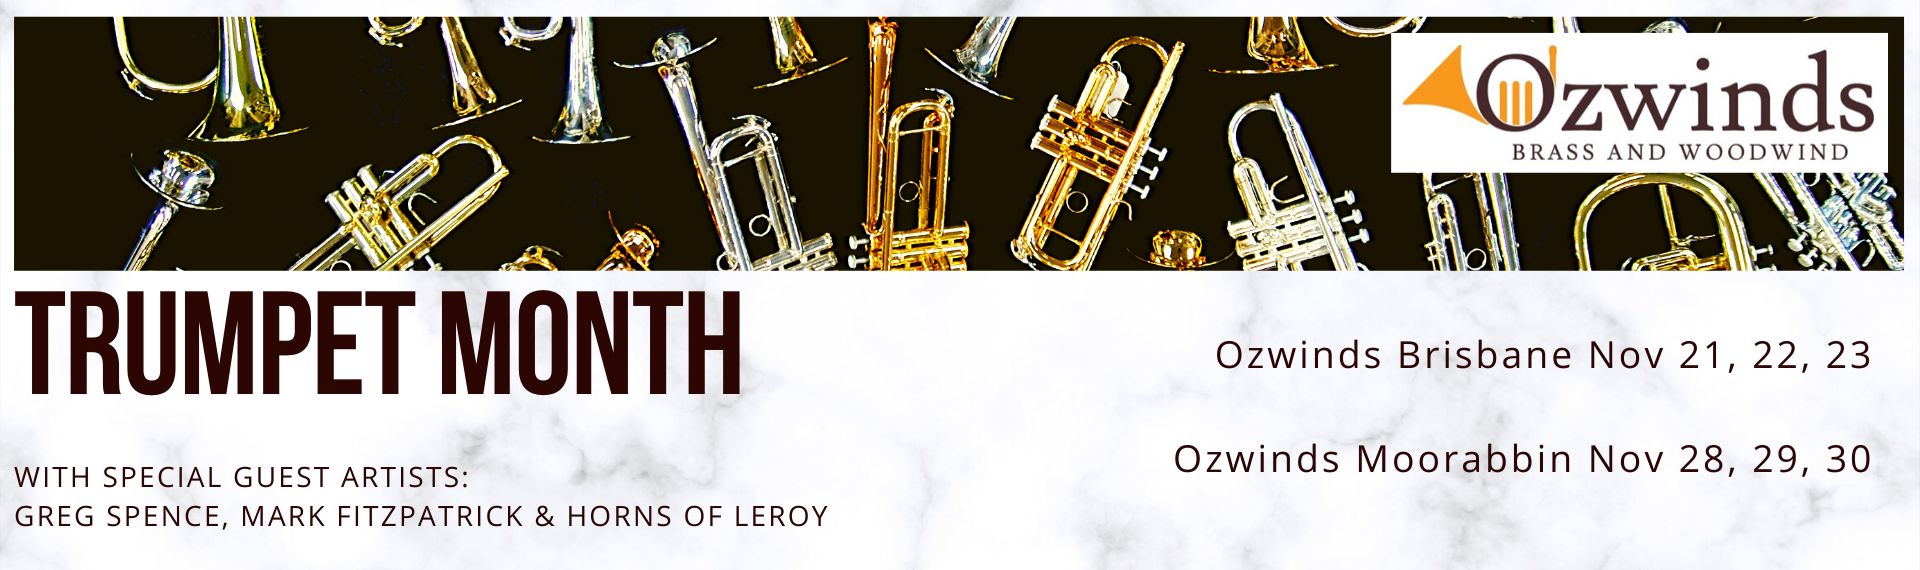 Trumpet Month at Ozwinds